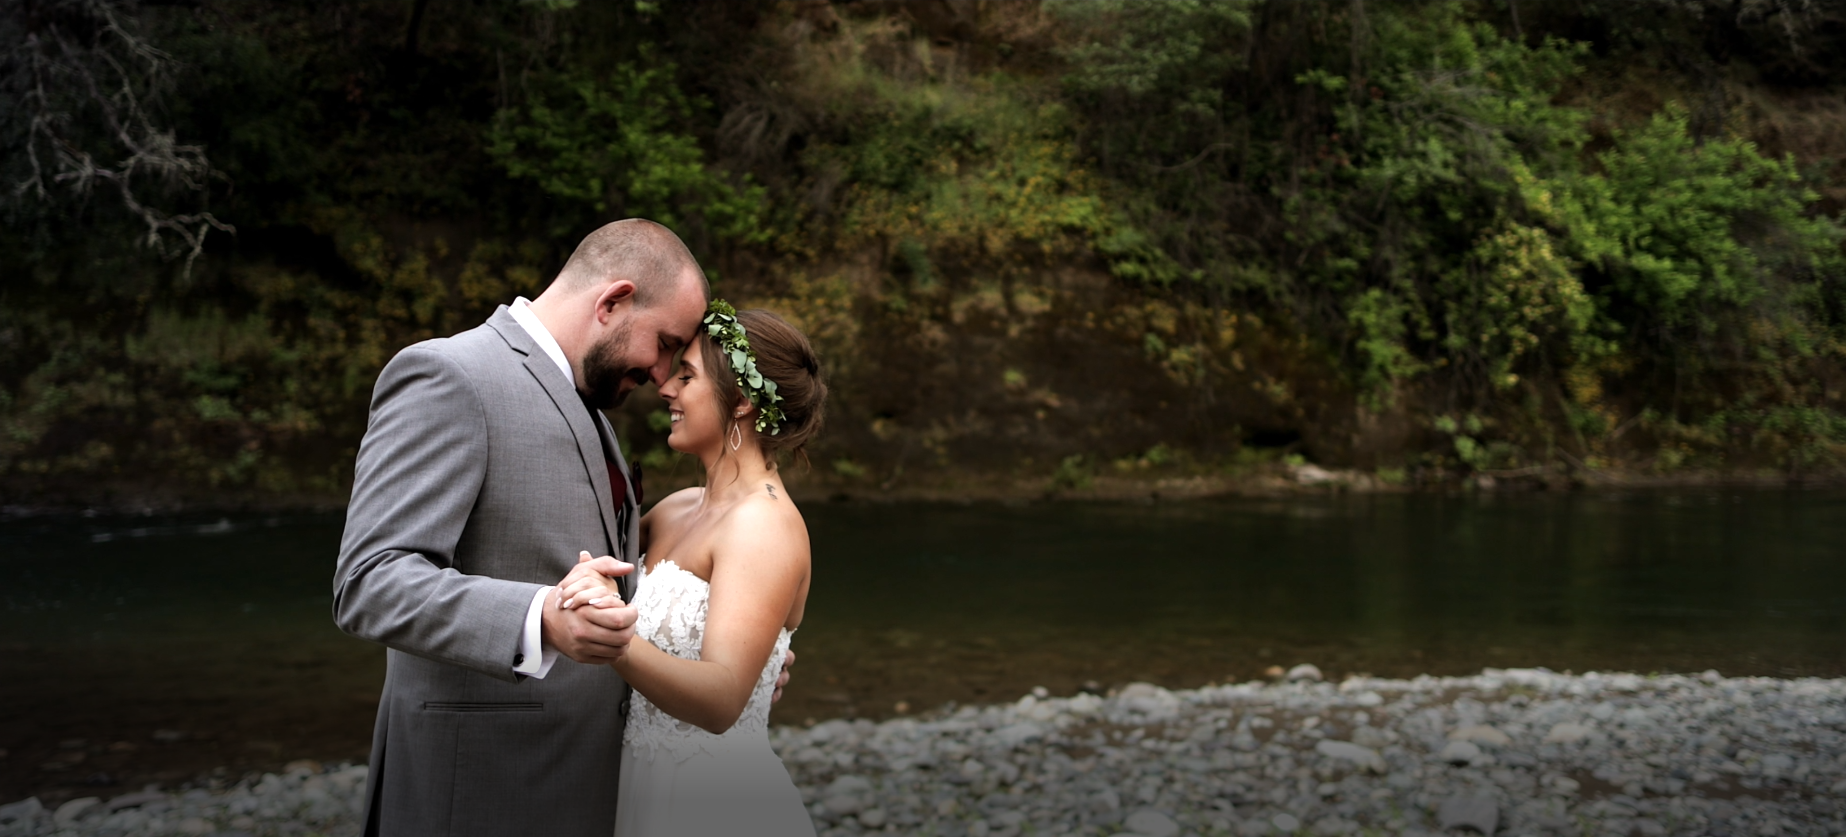 Bride and Groom dancing along the creek at Centerville Estates in Chico, Ca